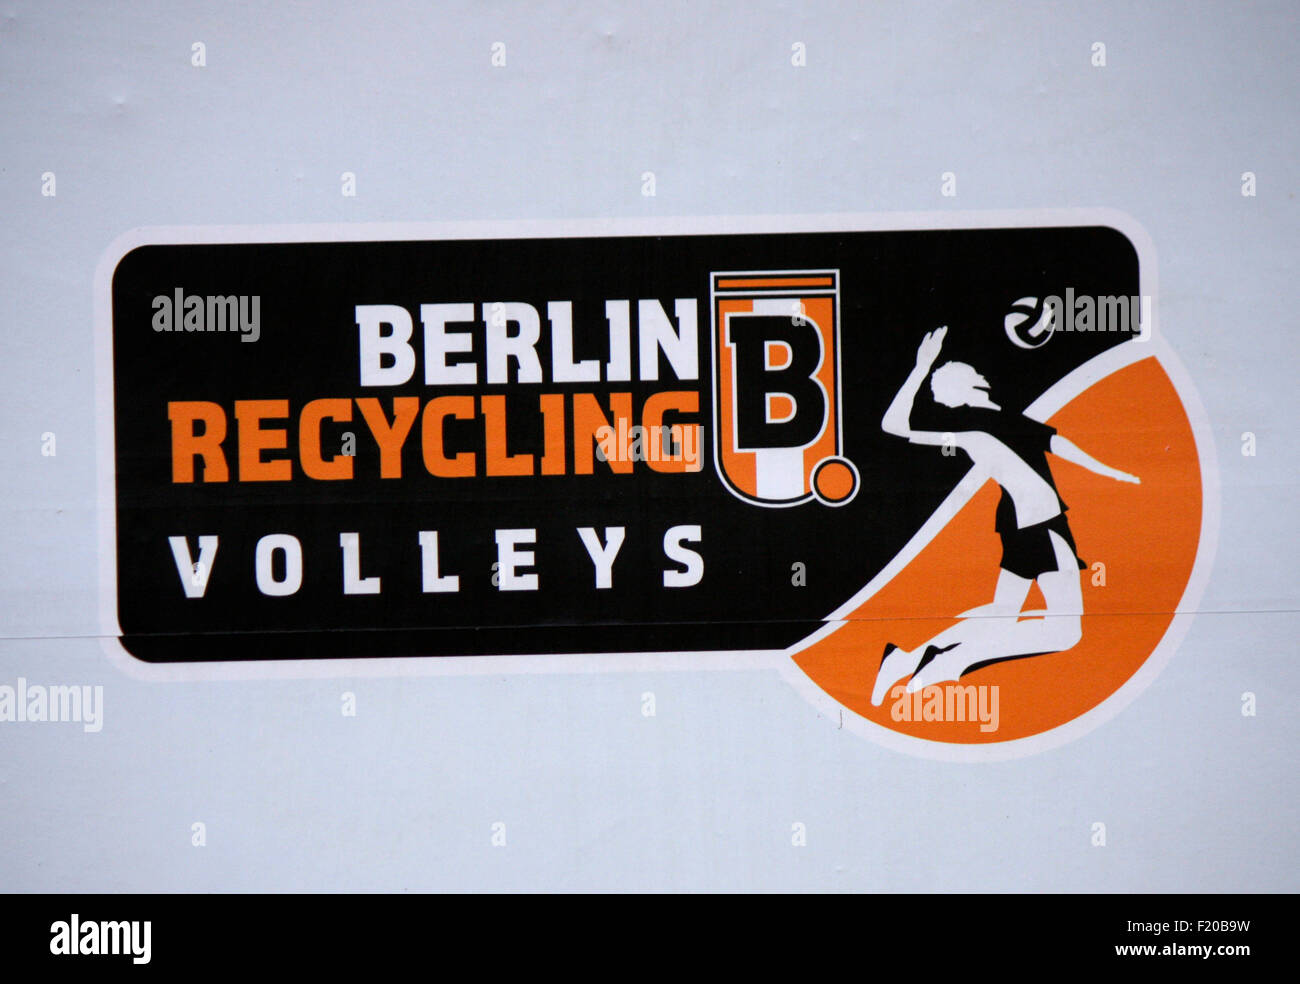 "Markenname: ""Berlin Recycling Volleys"", Berlin. Stockbild"